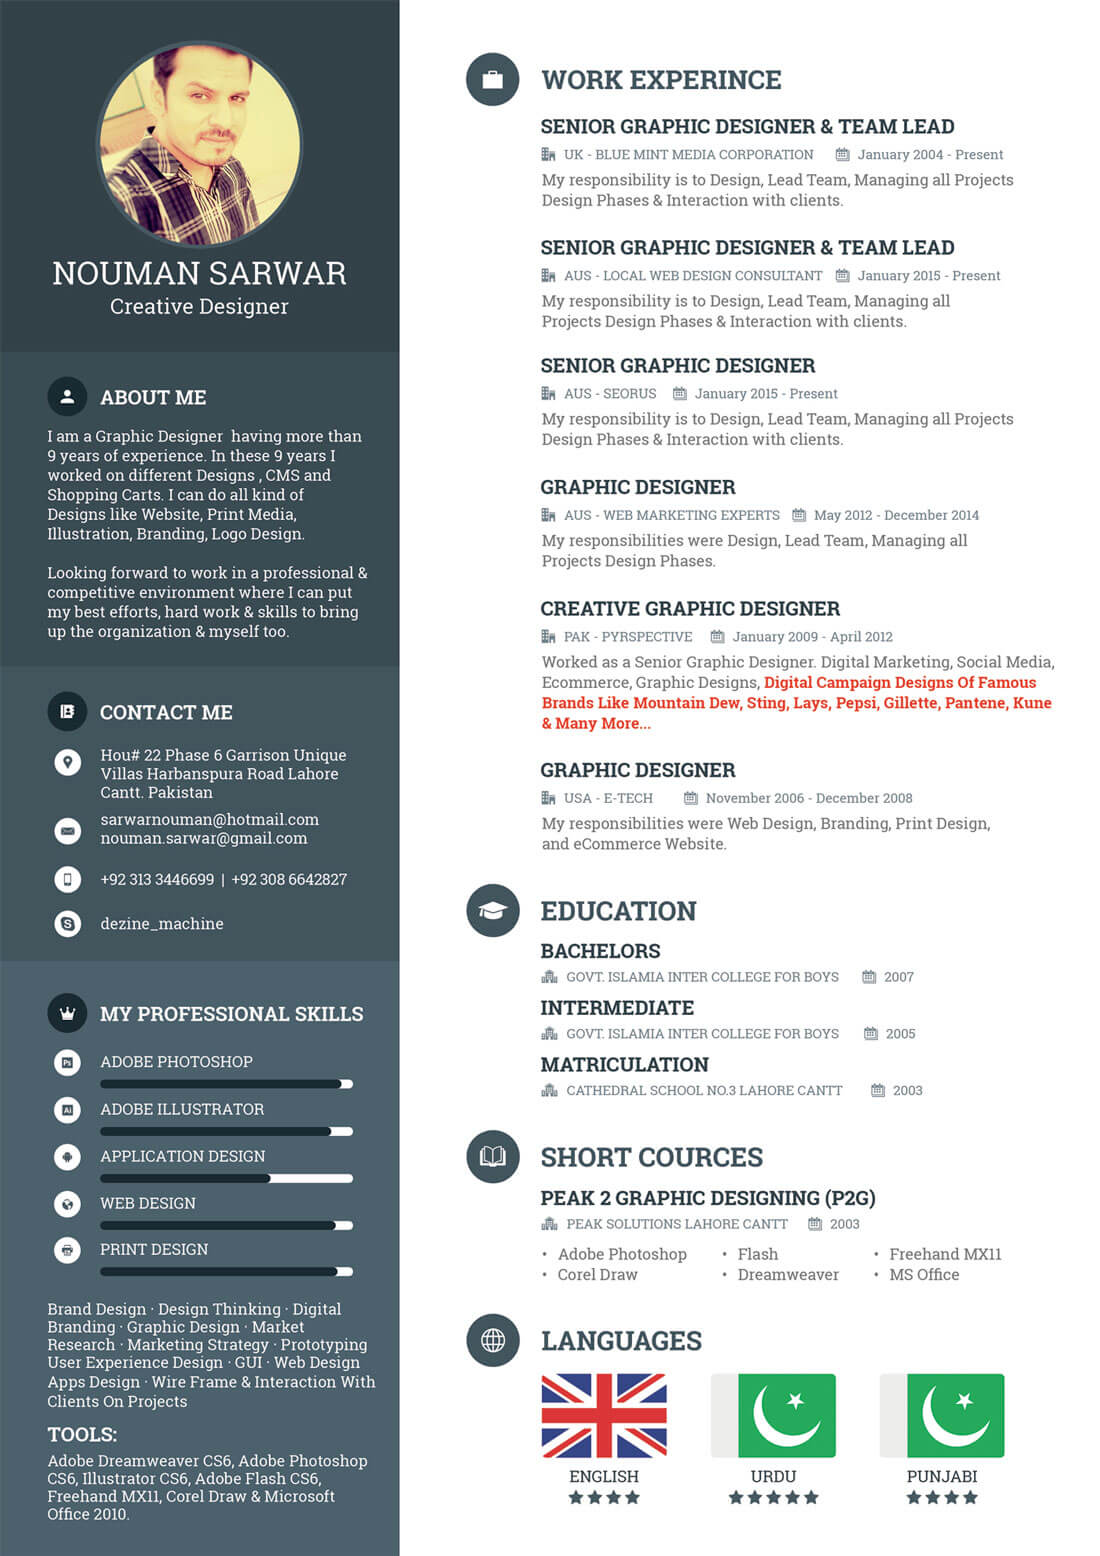 10 skills every designer needs on their resume